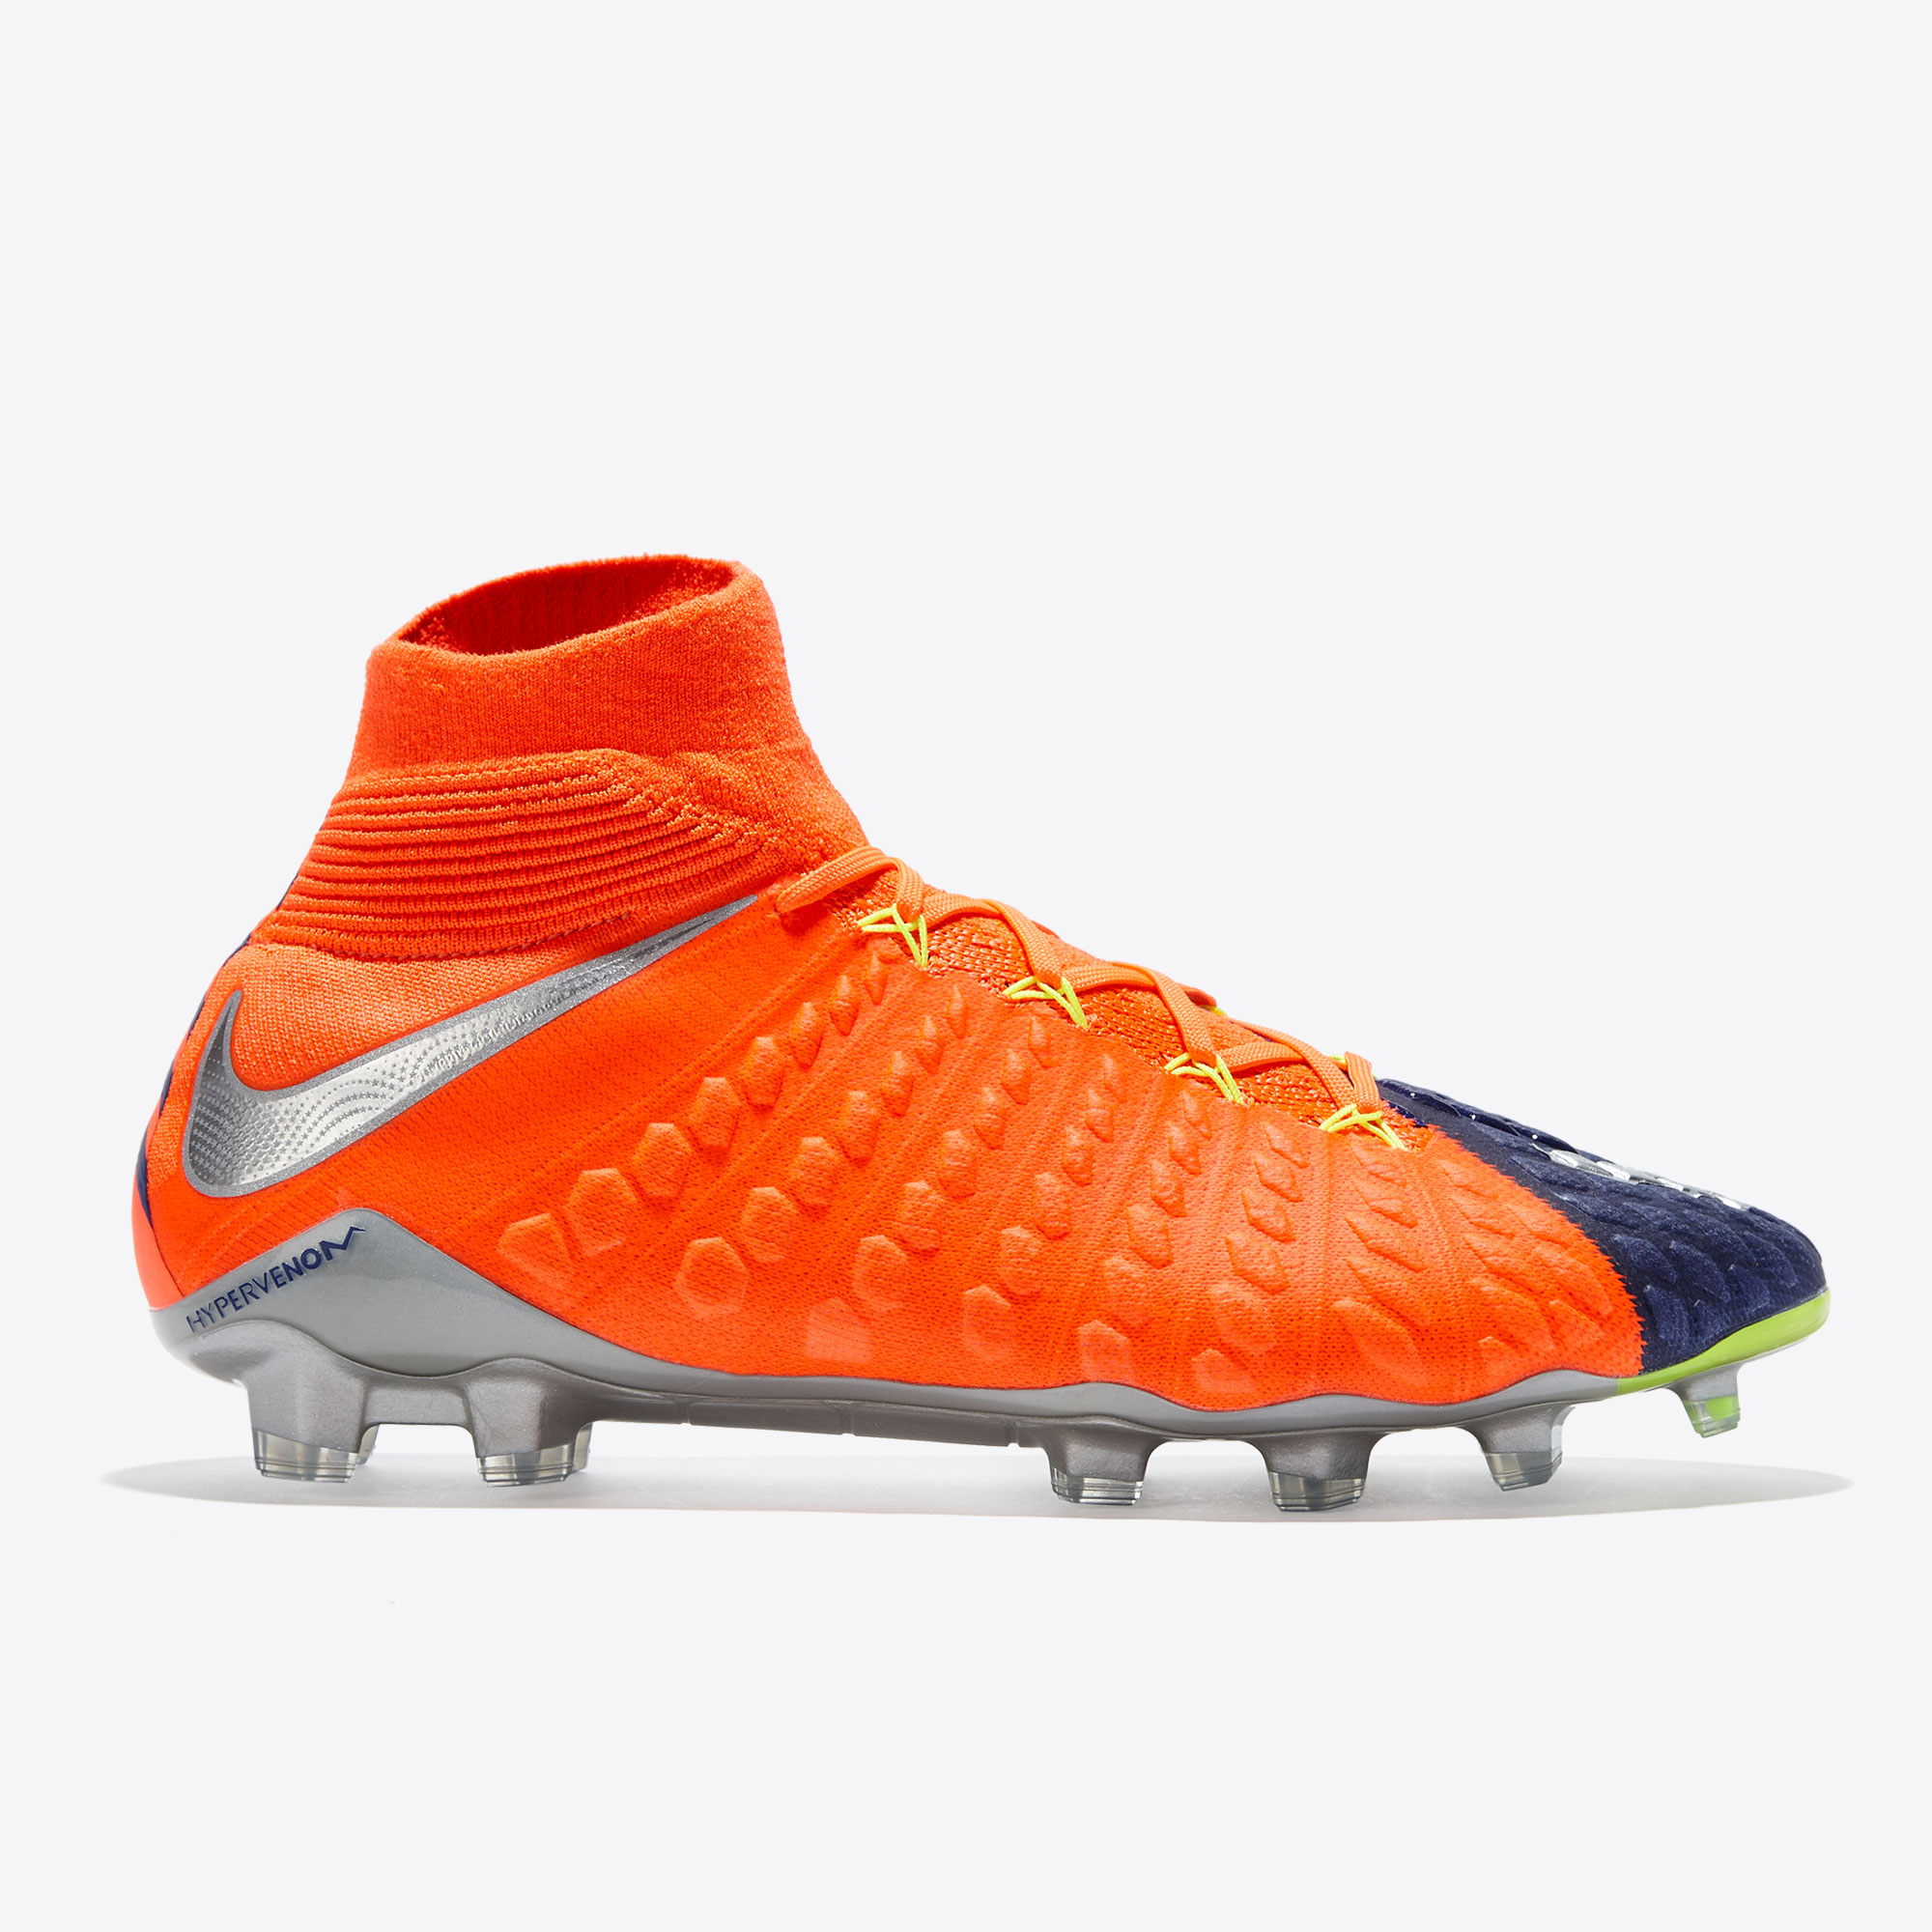 Nike Hypervenom Phantom III Dynamic Fit FG D